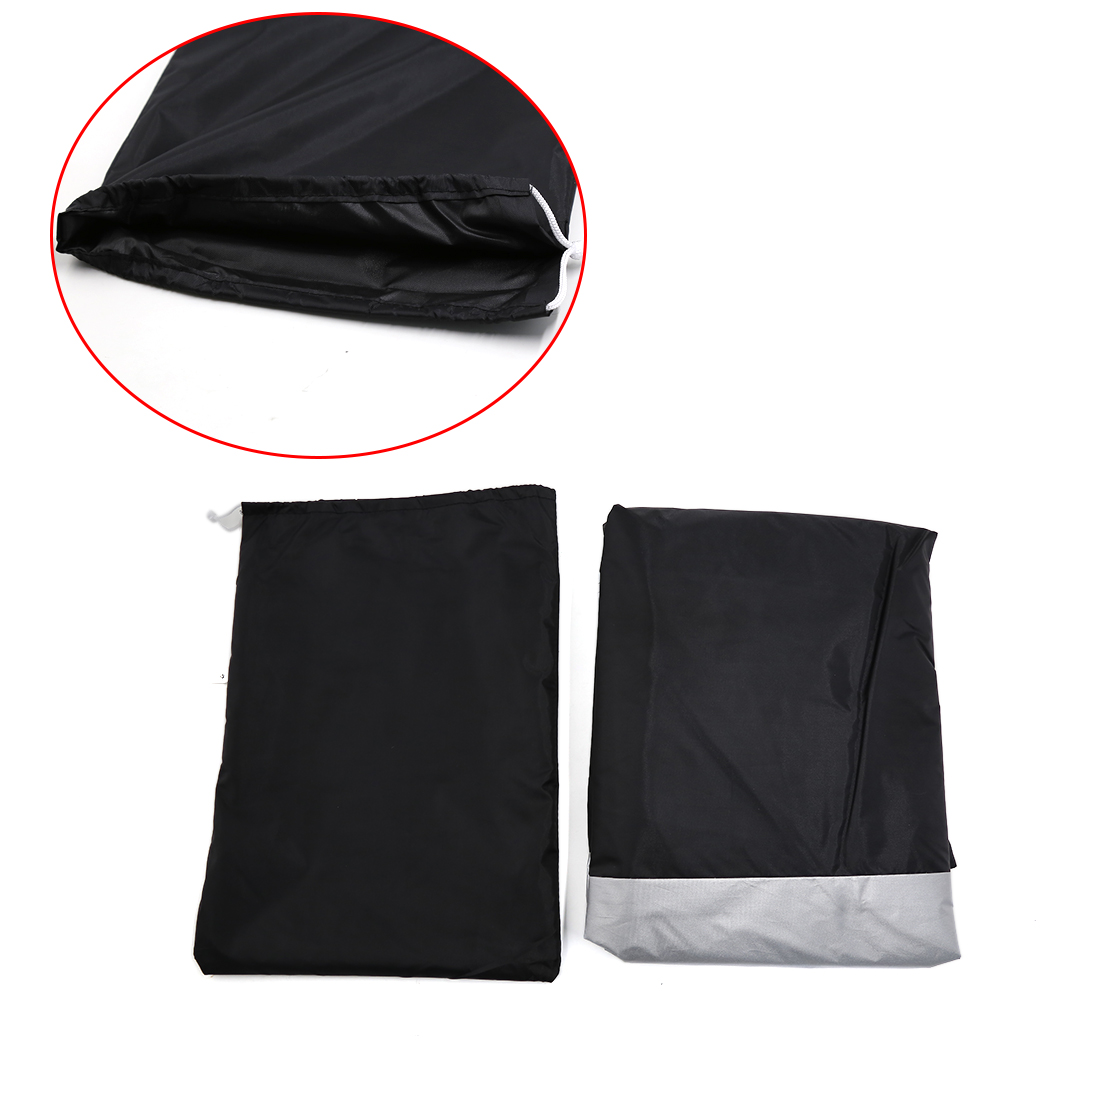 L 180T Rain Dust Motorcycle Cover Silver&Black Outdoor Rainproof UV Protector - image 4 of 7